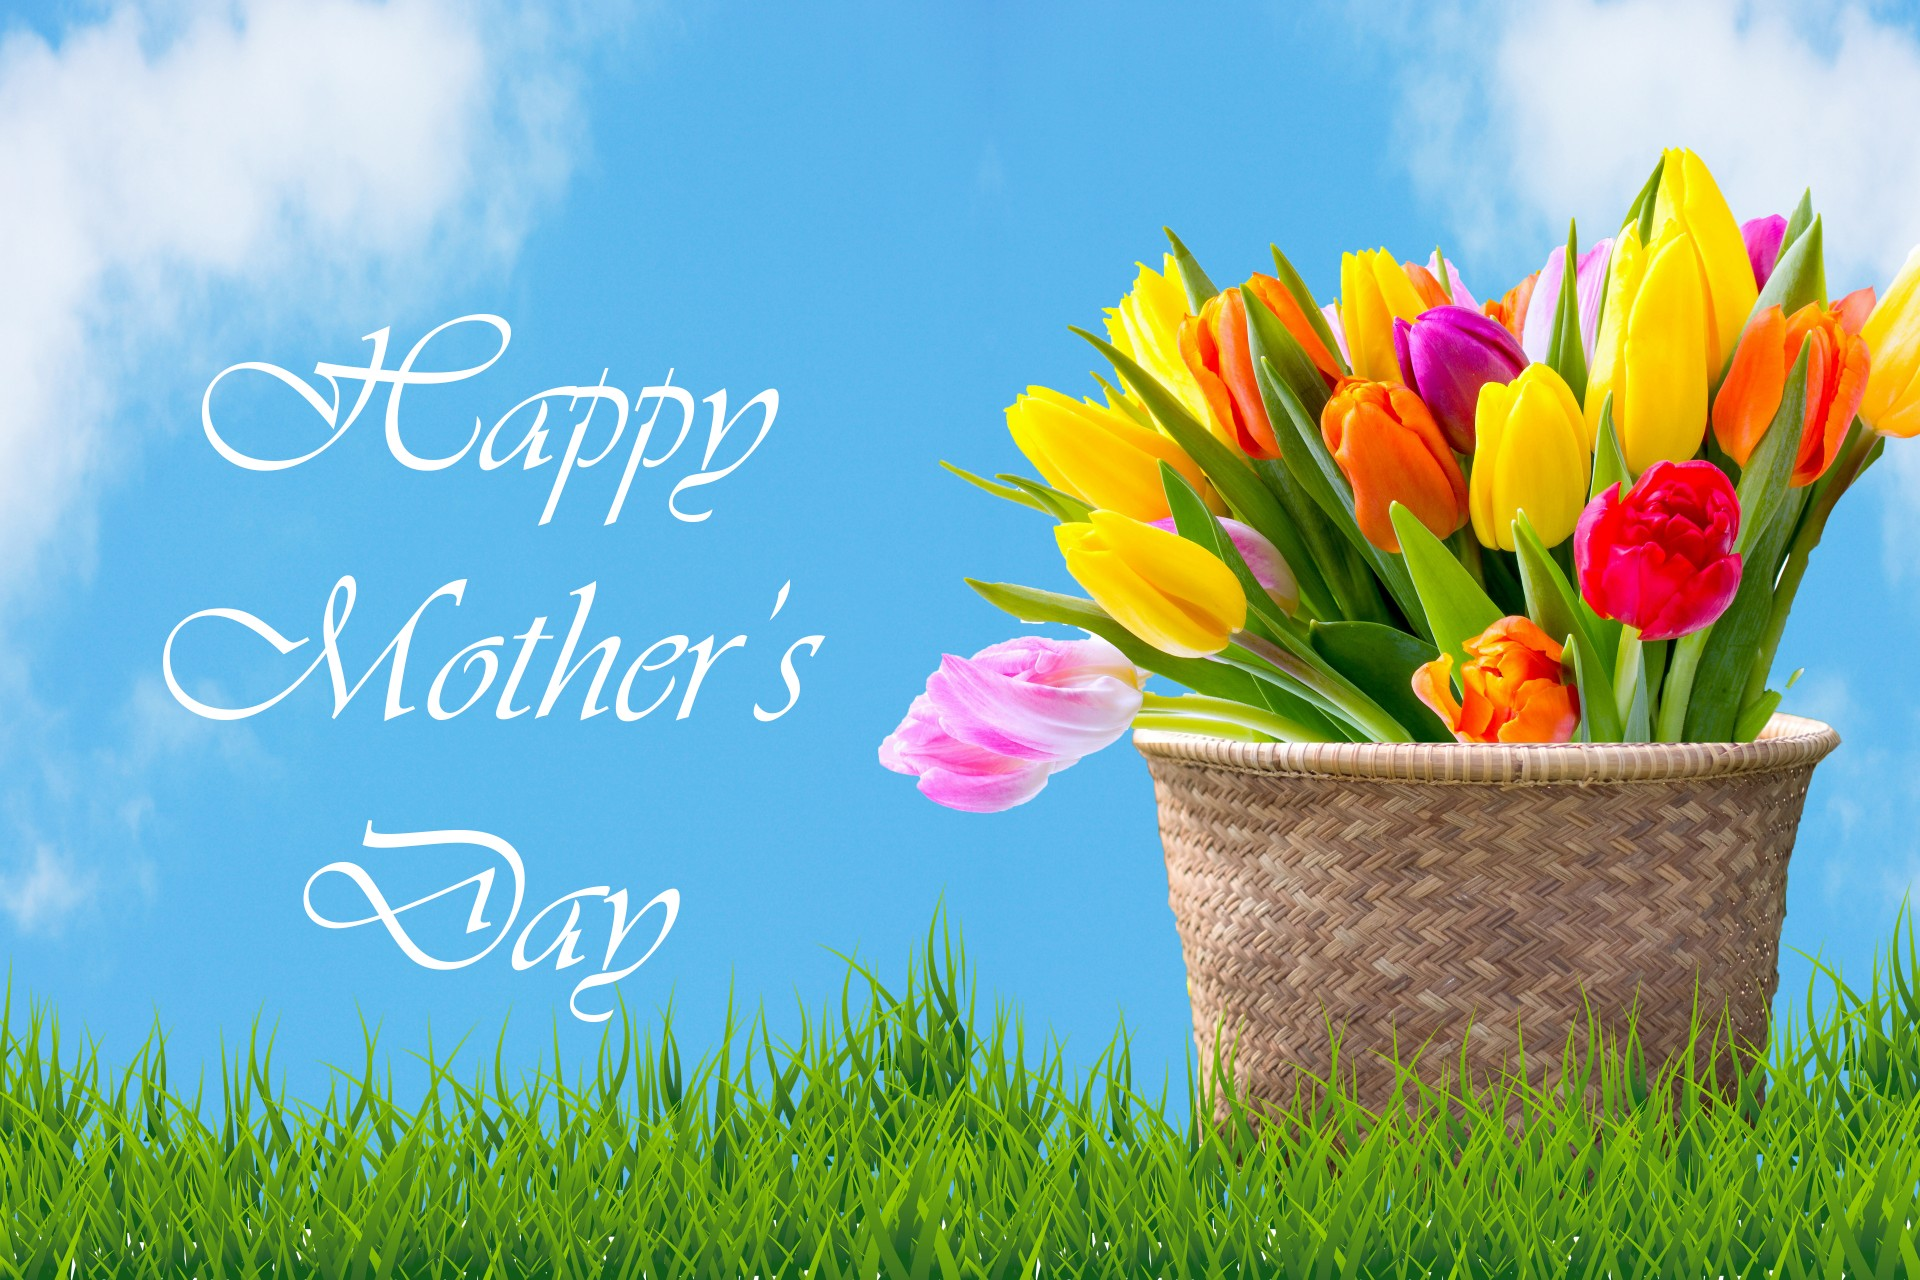 tulips-in-basket-mother-day-card